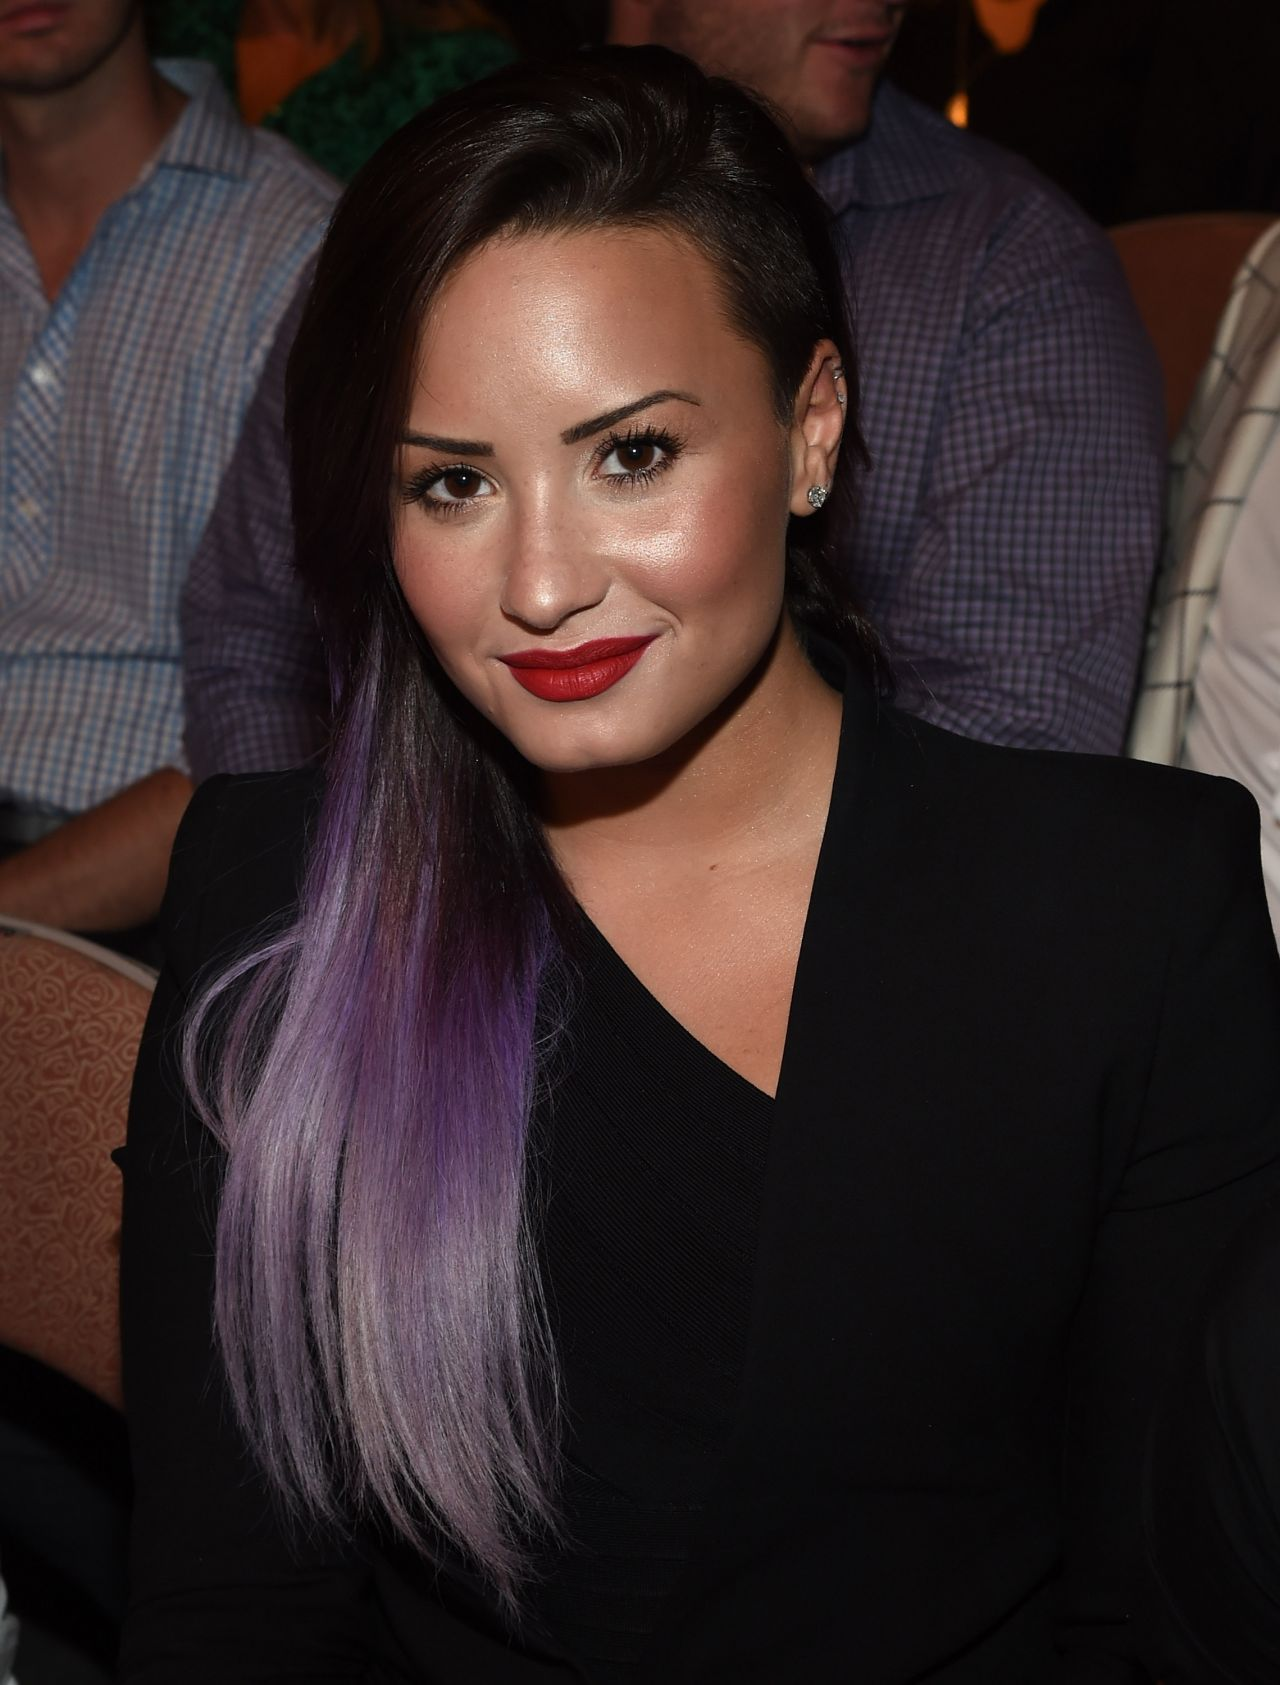 Demi Lovato at UFC 175 - Weidman v Machida,  July 2014